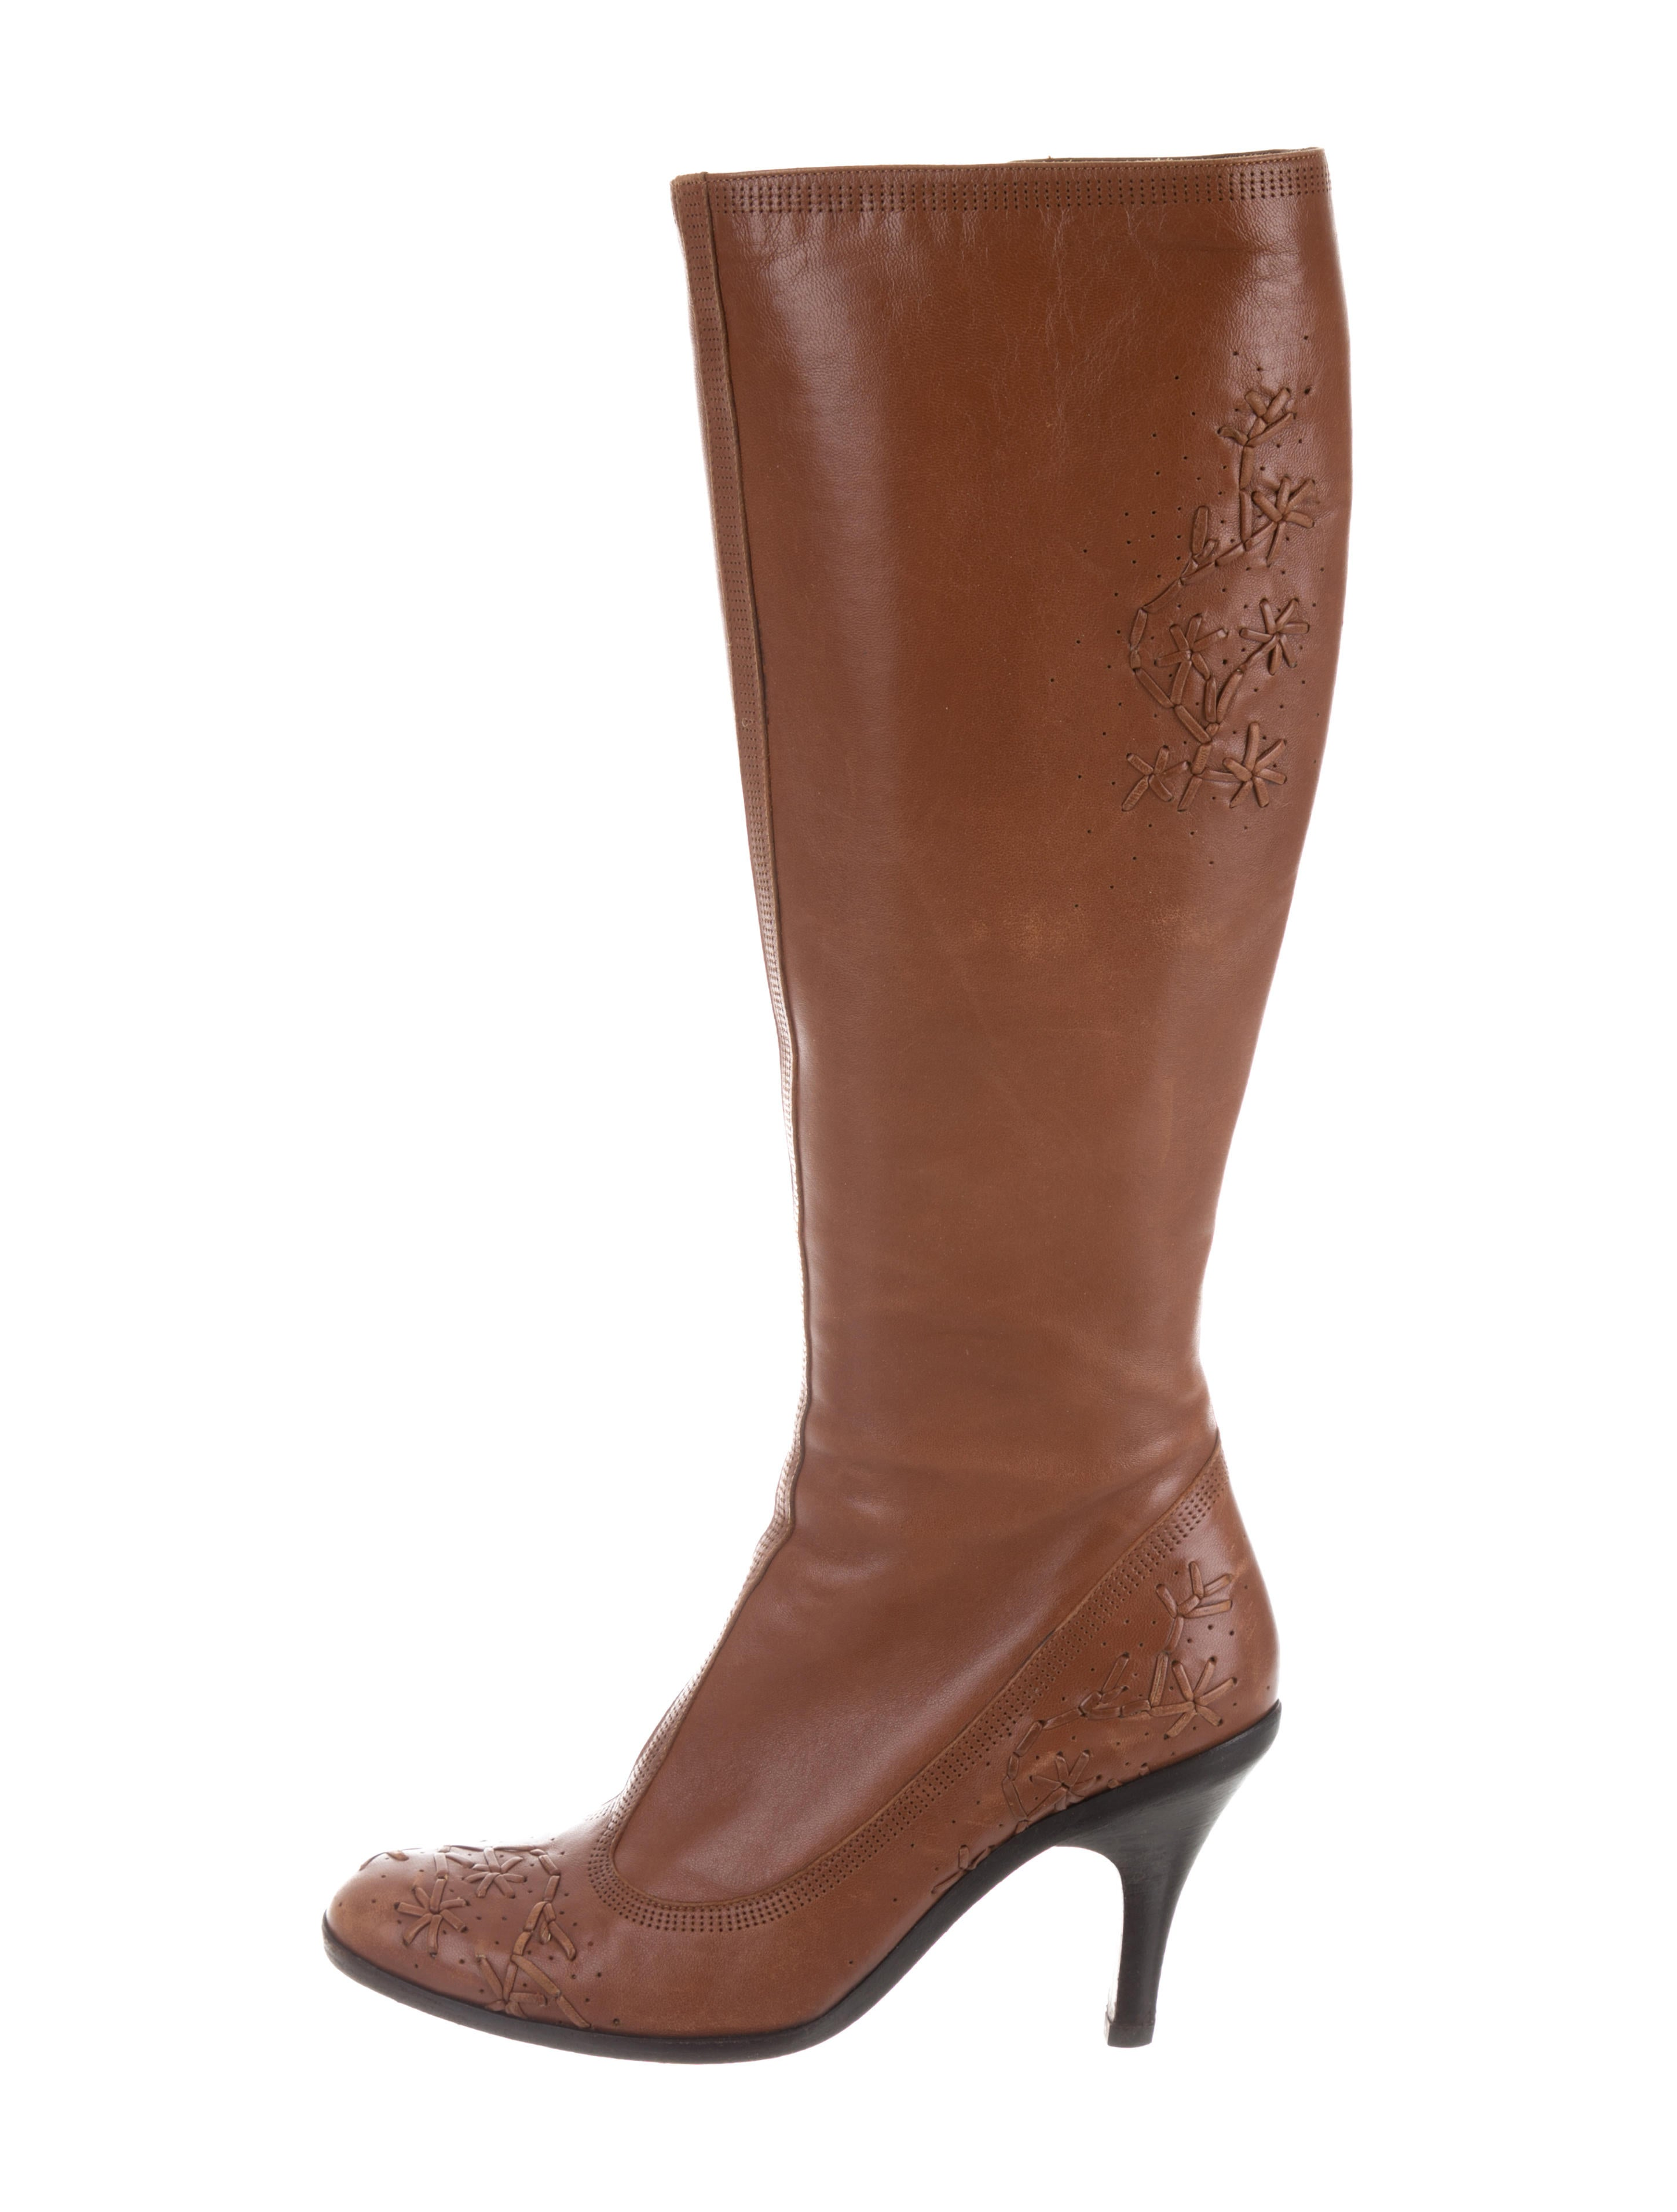 outlet Manchester Dries Van Noten Embroidered Knee-High Boots marketable cheap online M7Kh8qx4